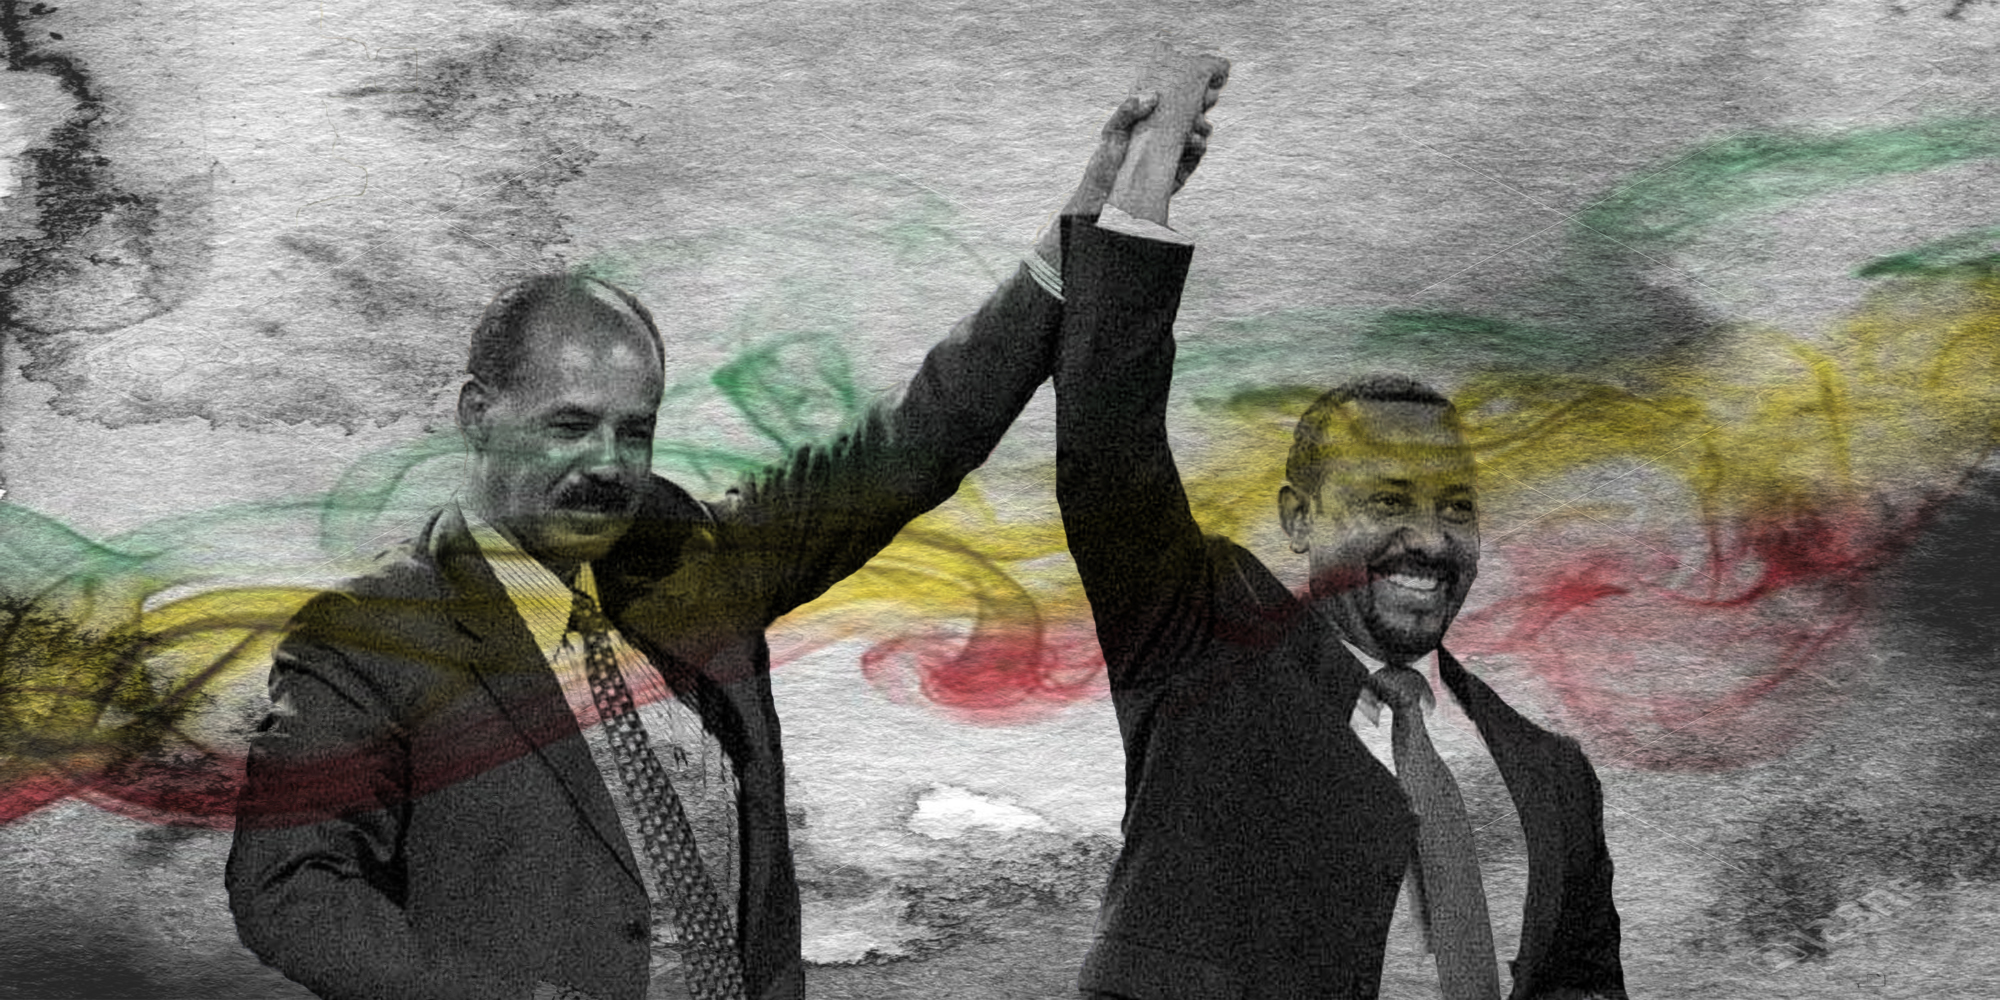 Issaias Afwerki, President of Eritrea, and Abiy Ahmed, Prime Minister of Ethiopia.